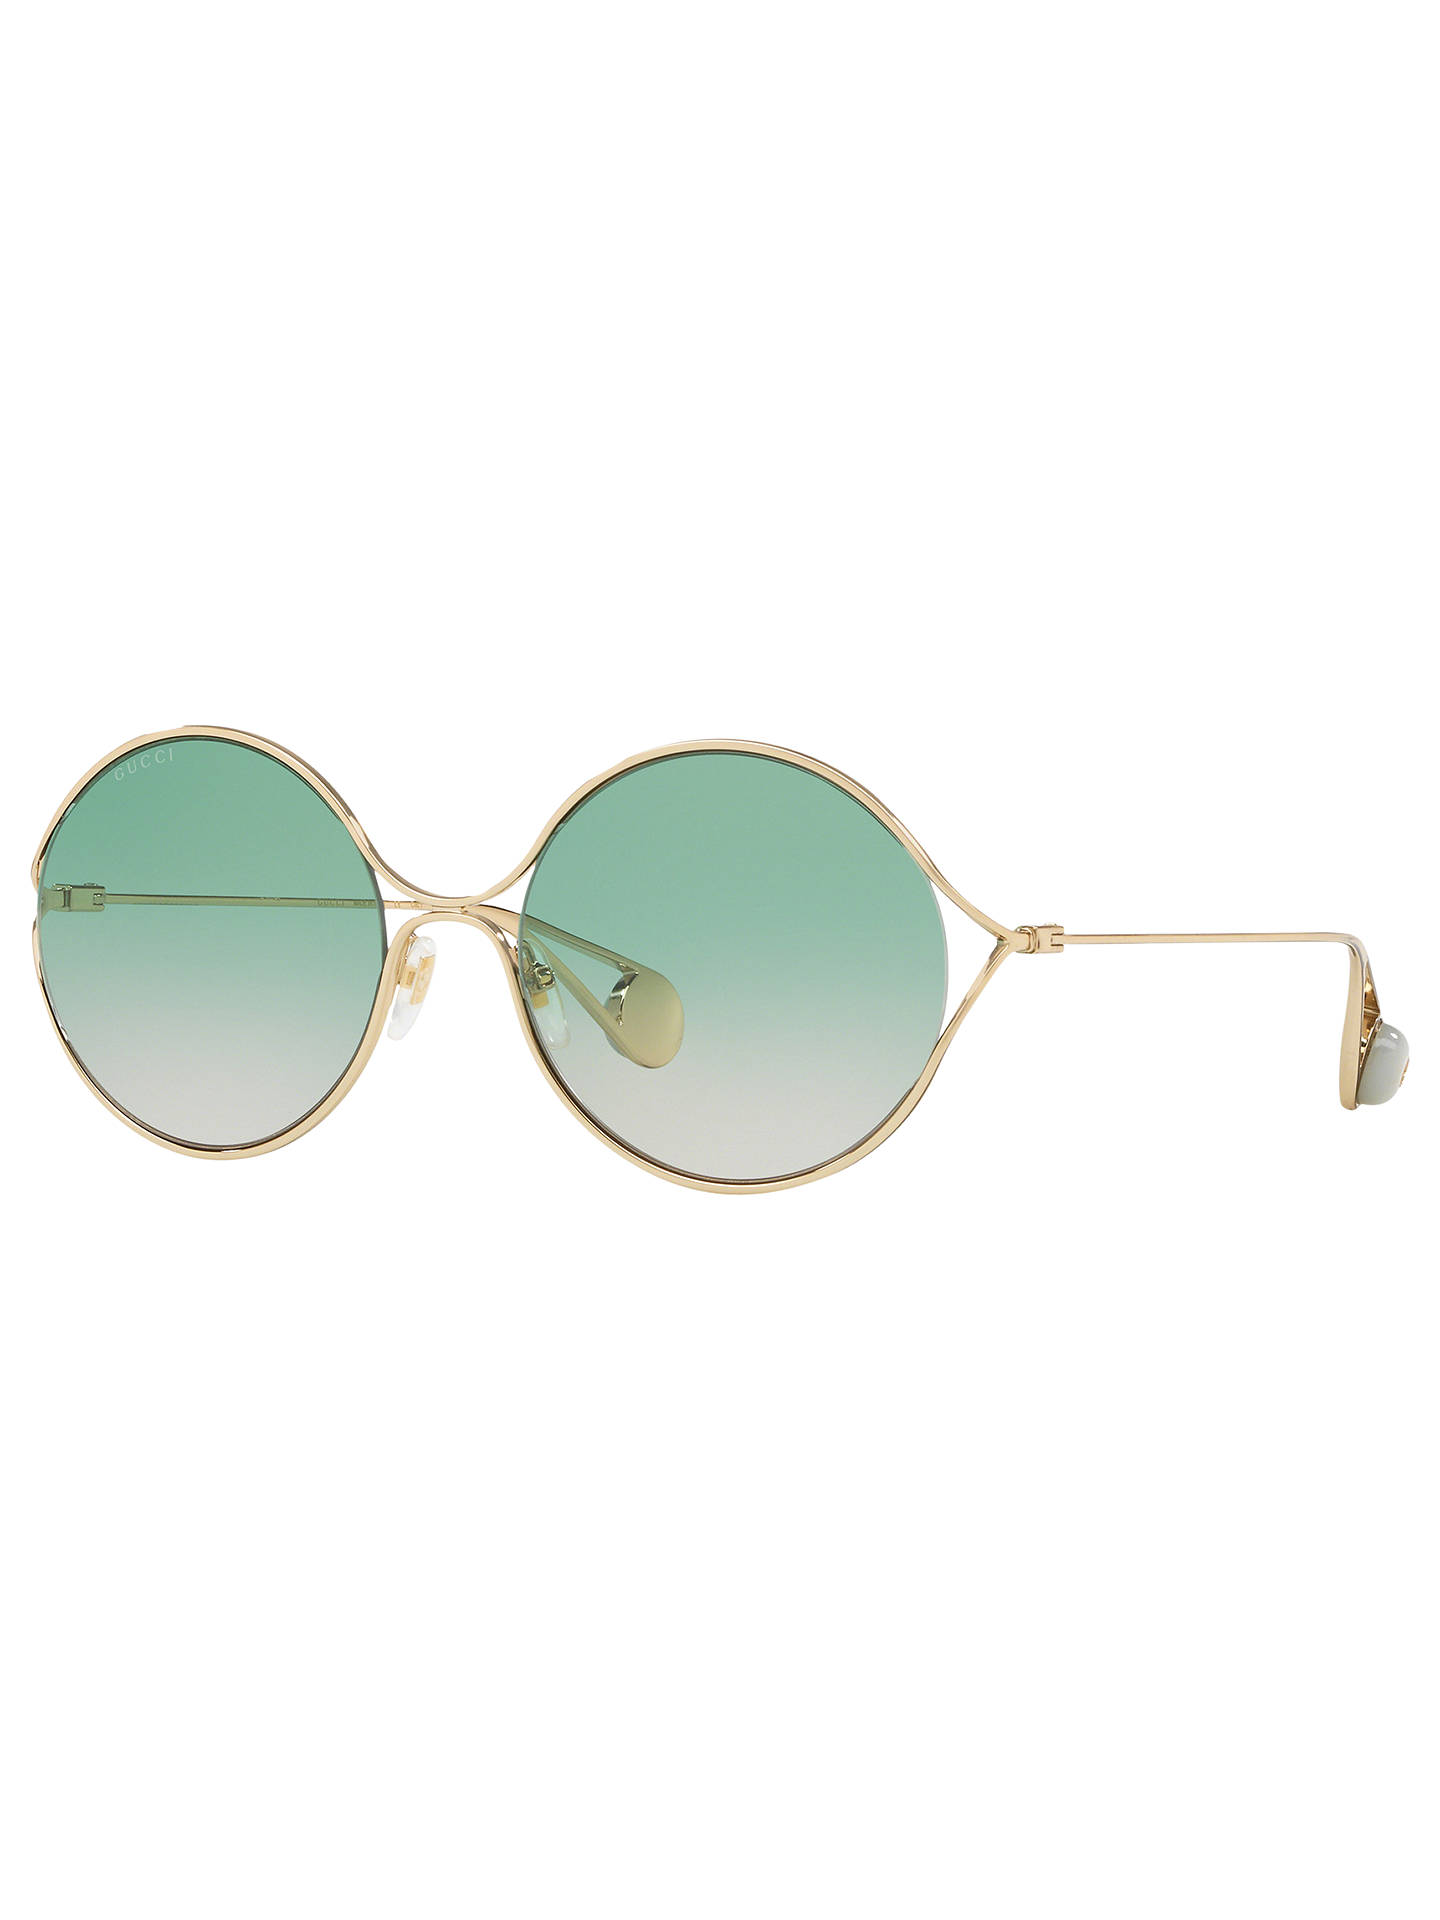 d343966a076 Buy Gucci GG0253S Women s Round Sunglasses